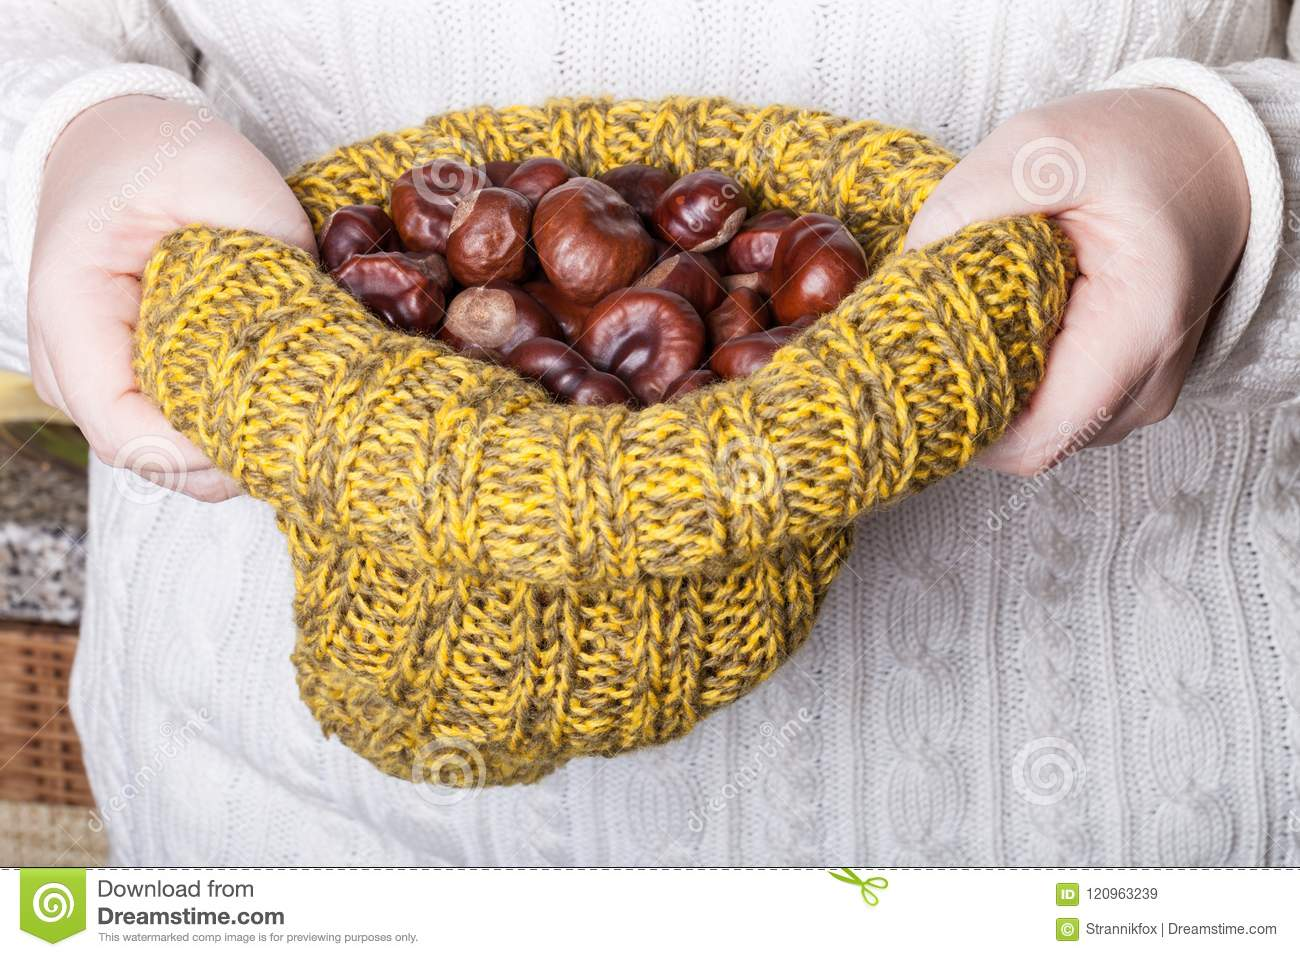 Many chestnuts in human hands